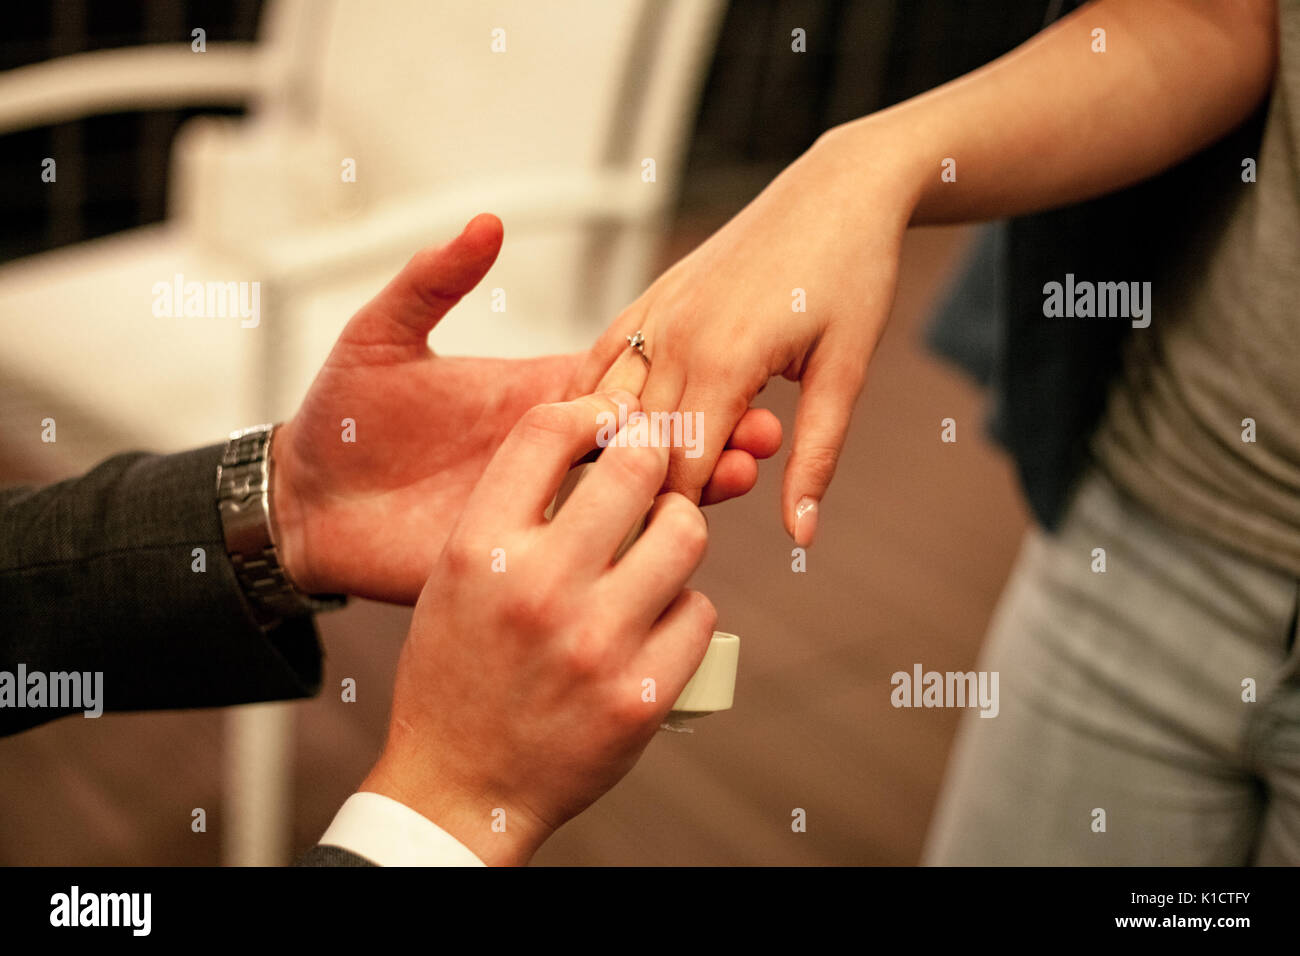 Man makes woman marriage proposal and puts on engagement ring with diamond on her finger. Close up. - Stock Image